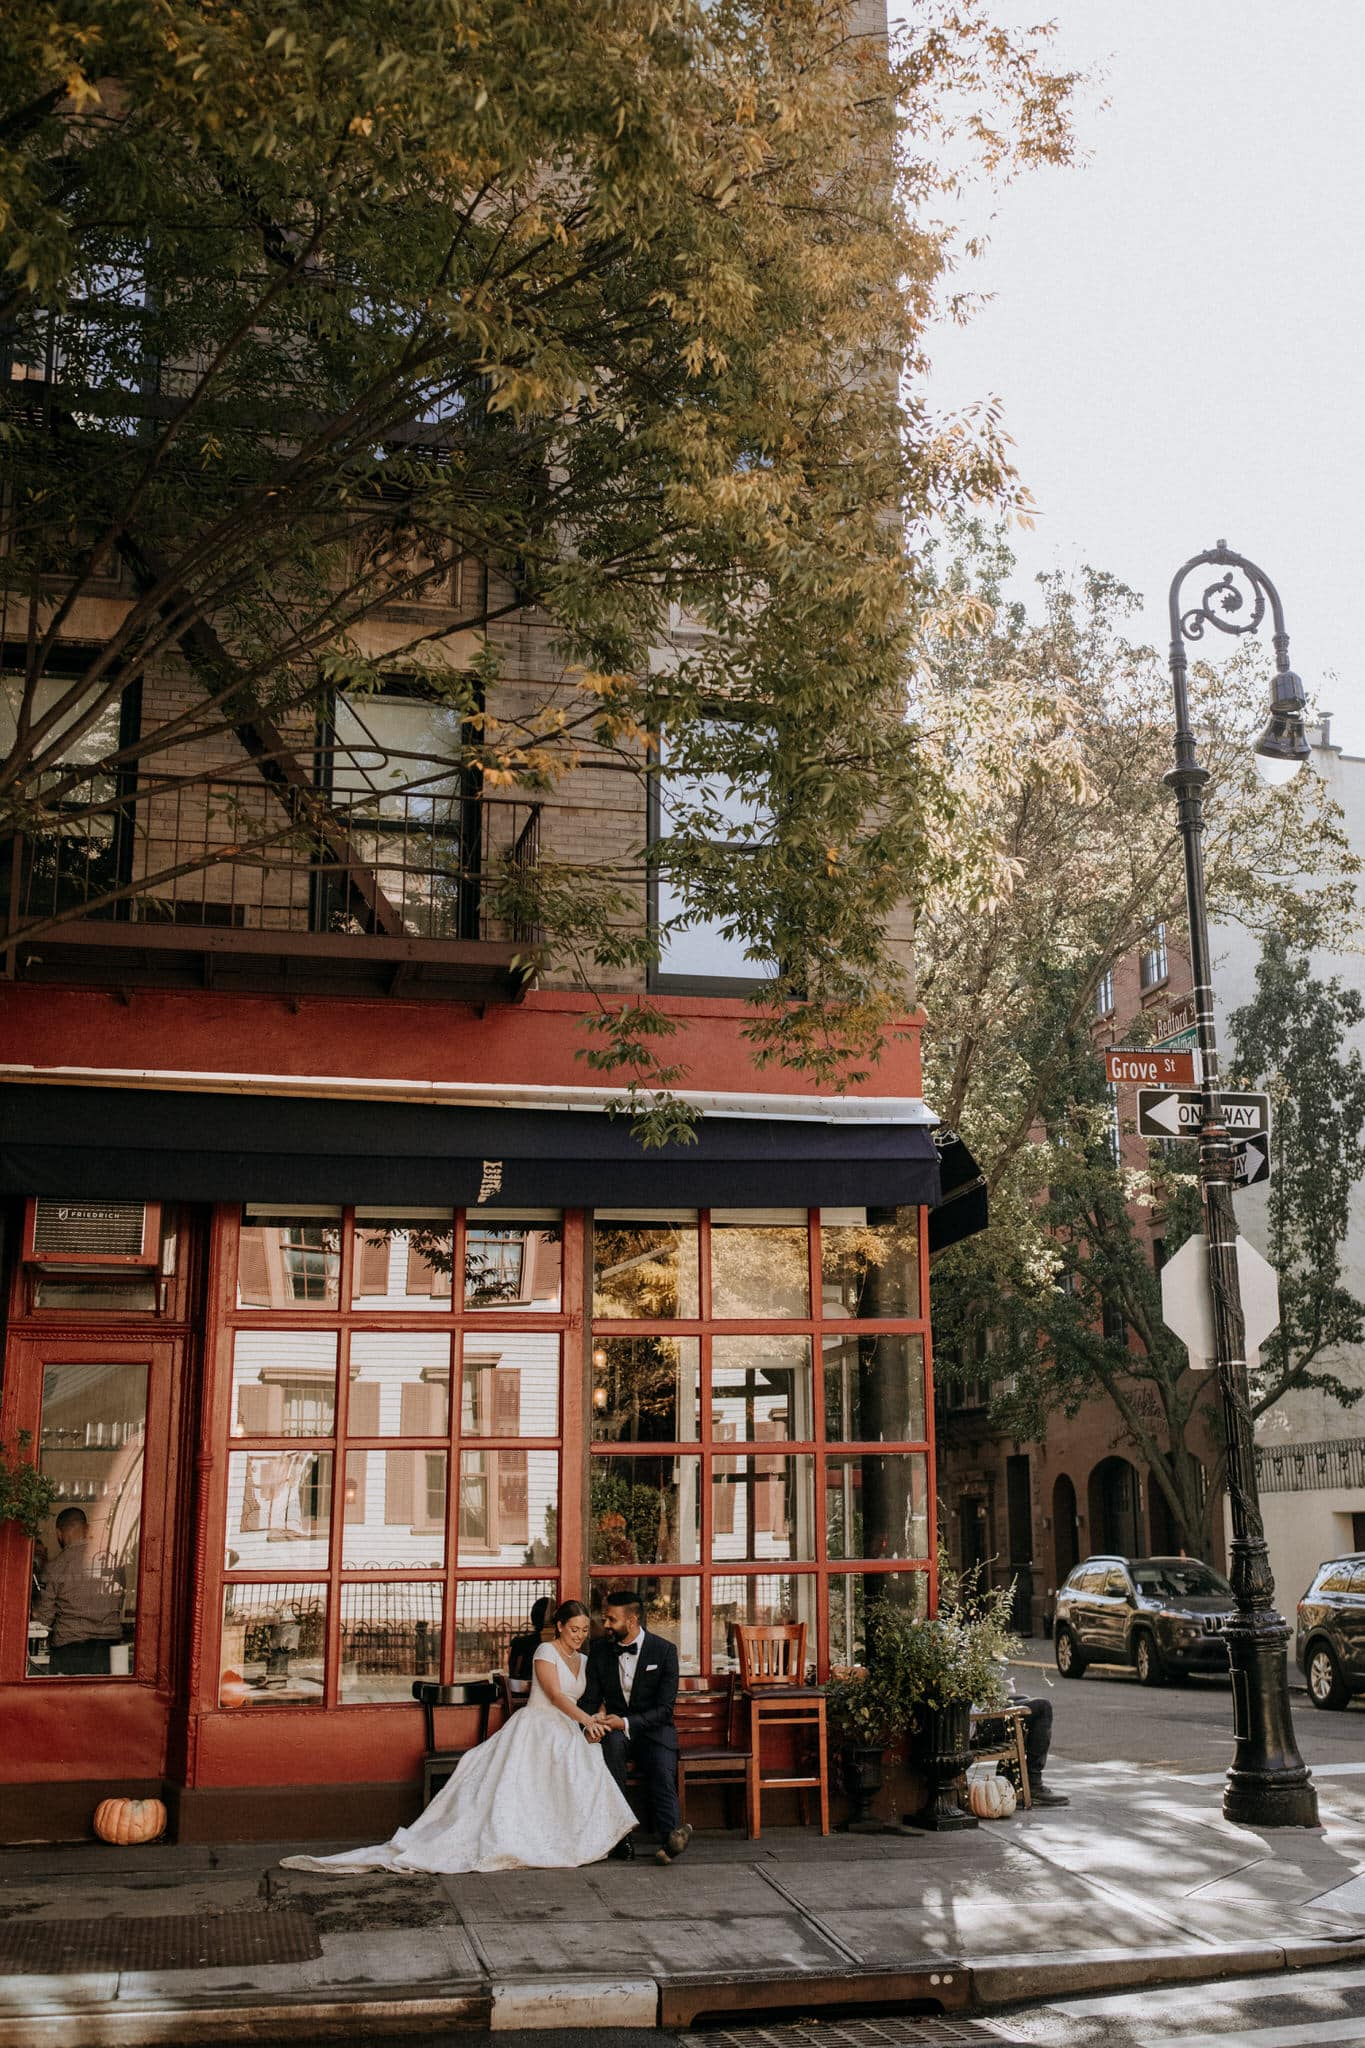 The bride and groom sit in front of a red bistro on their walk through the streets of New York. Wedding Photographer Brent Calis.